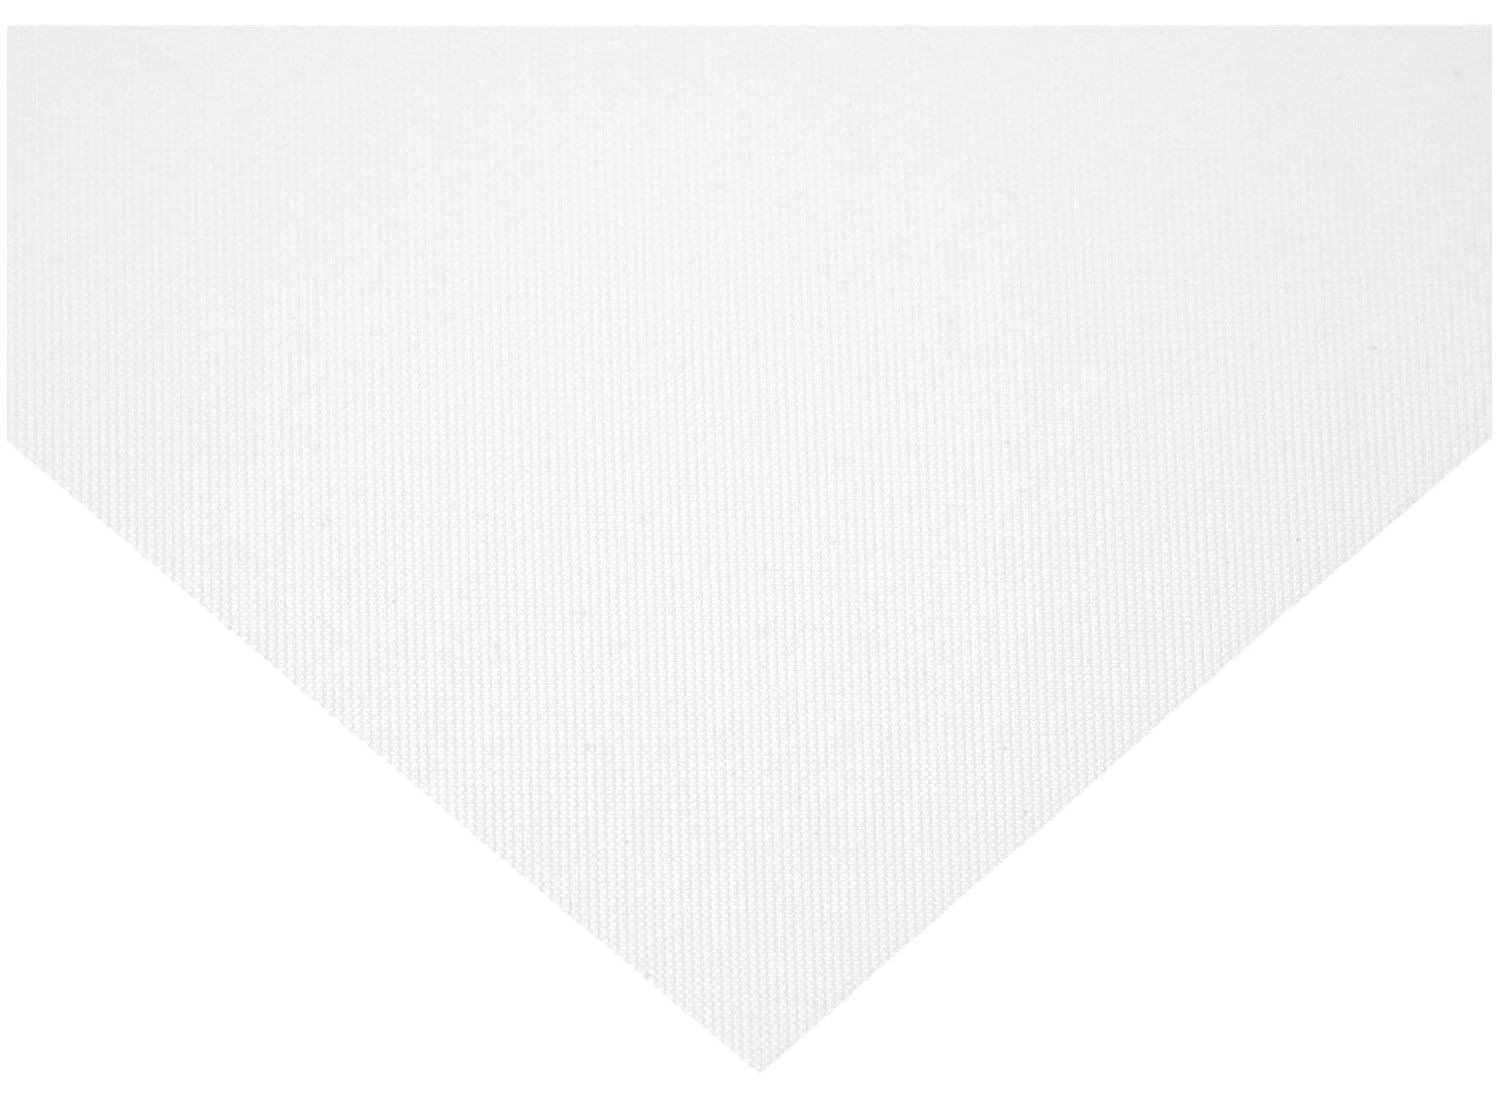 Nylon 6//6 Woven Mesh Sheet Opaque Off-White 10 yards Length 40 Width 29/% Open Area 80 microns Mesh Size